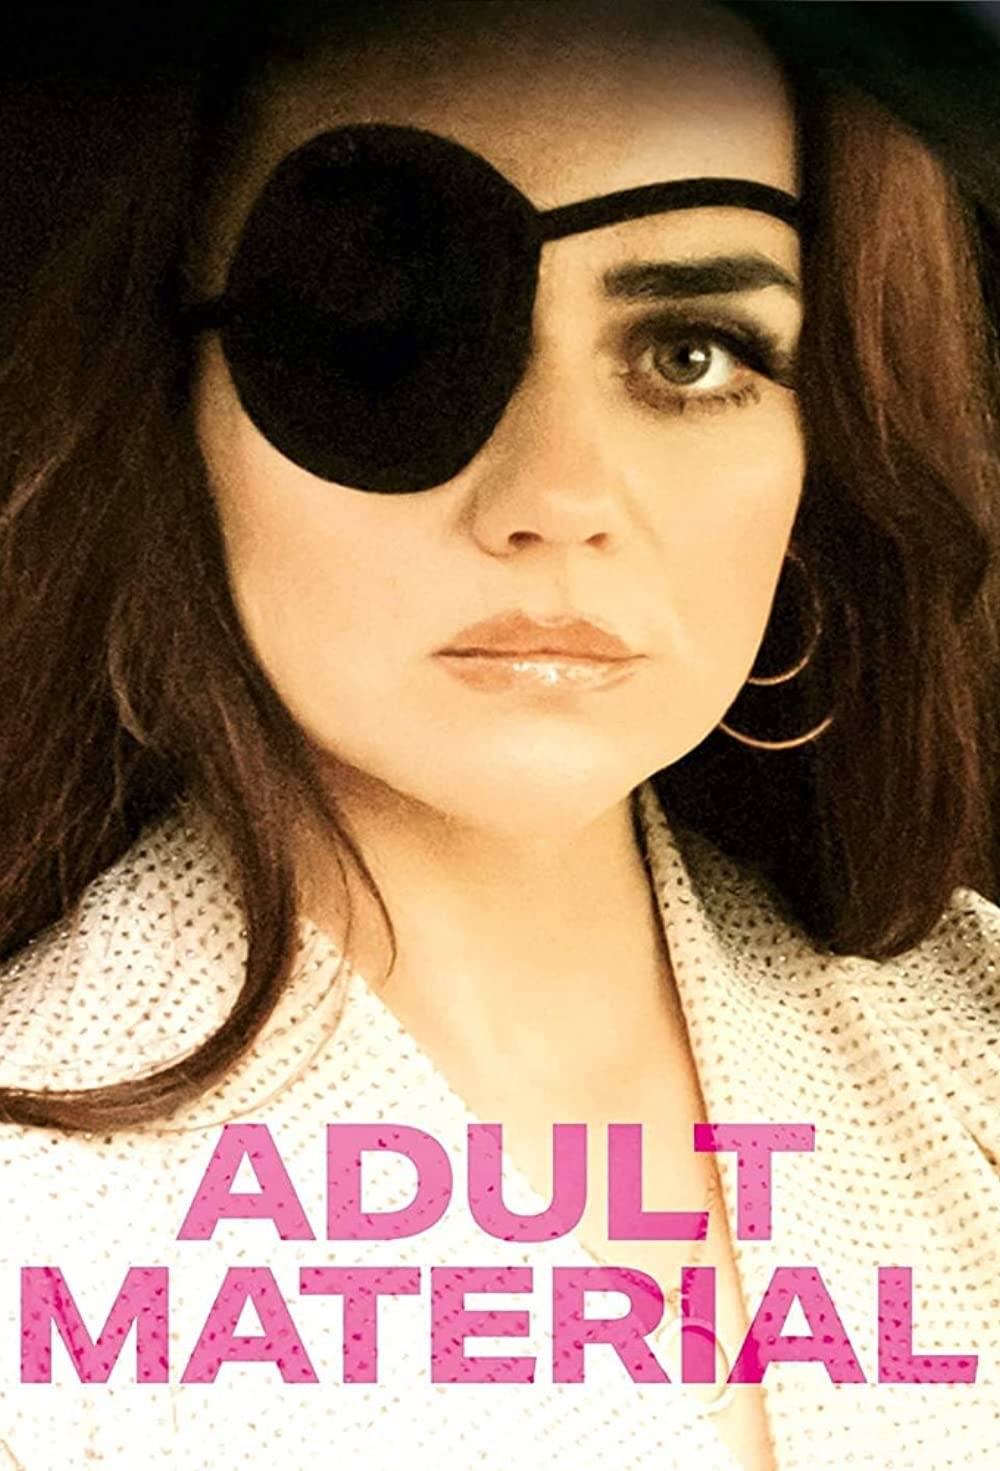 18+Adult Material 2021 S01 English Complete AMZN Web Series 720p UNRATED HDRip 1.3GB | 610MB Download